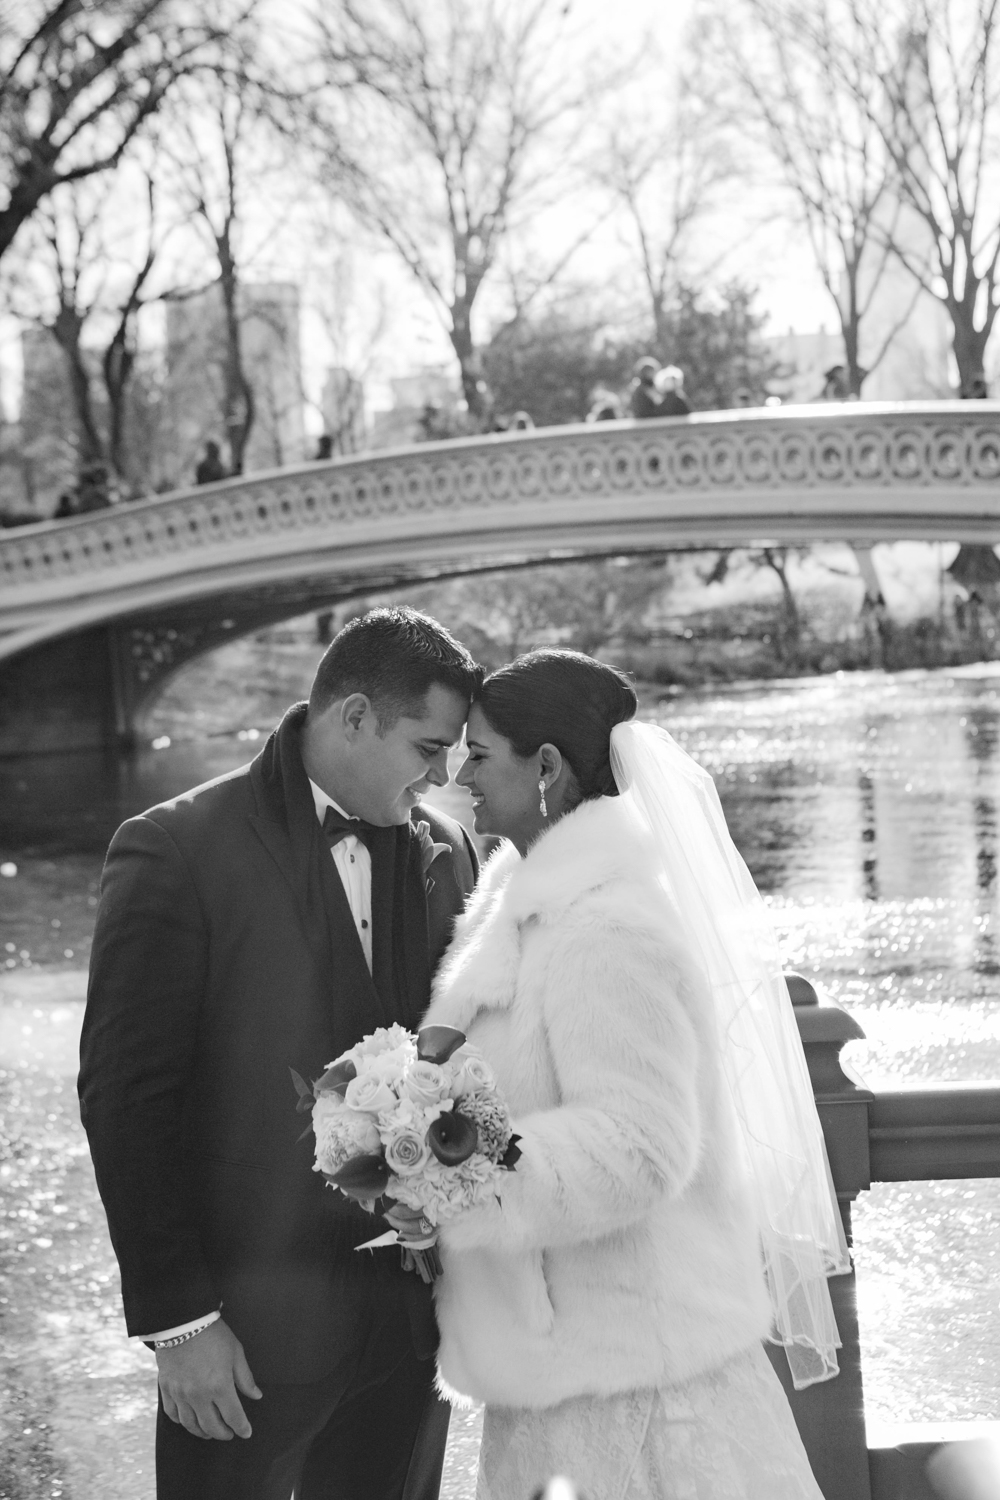 Black and white portrait of bride and groom under bridge